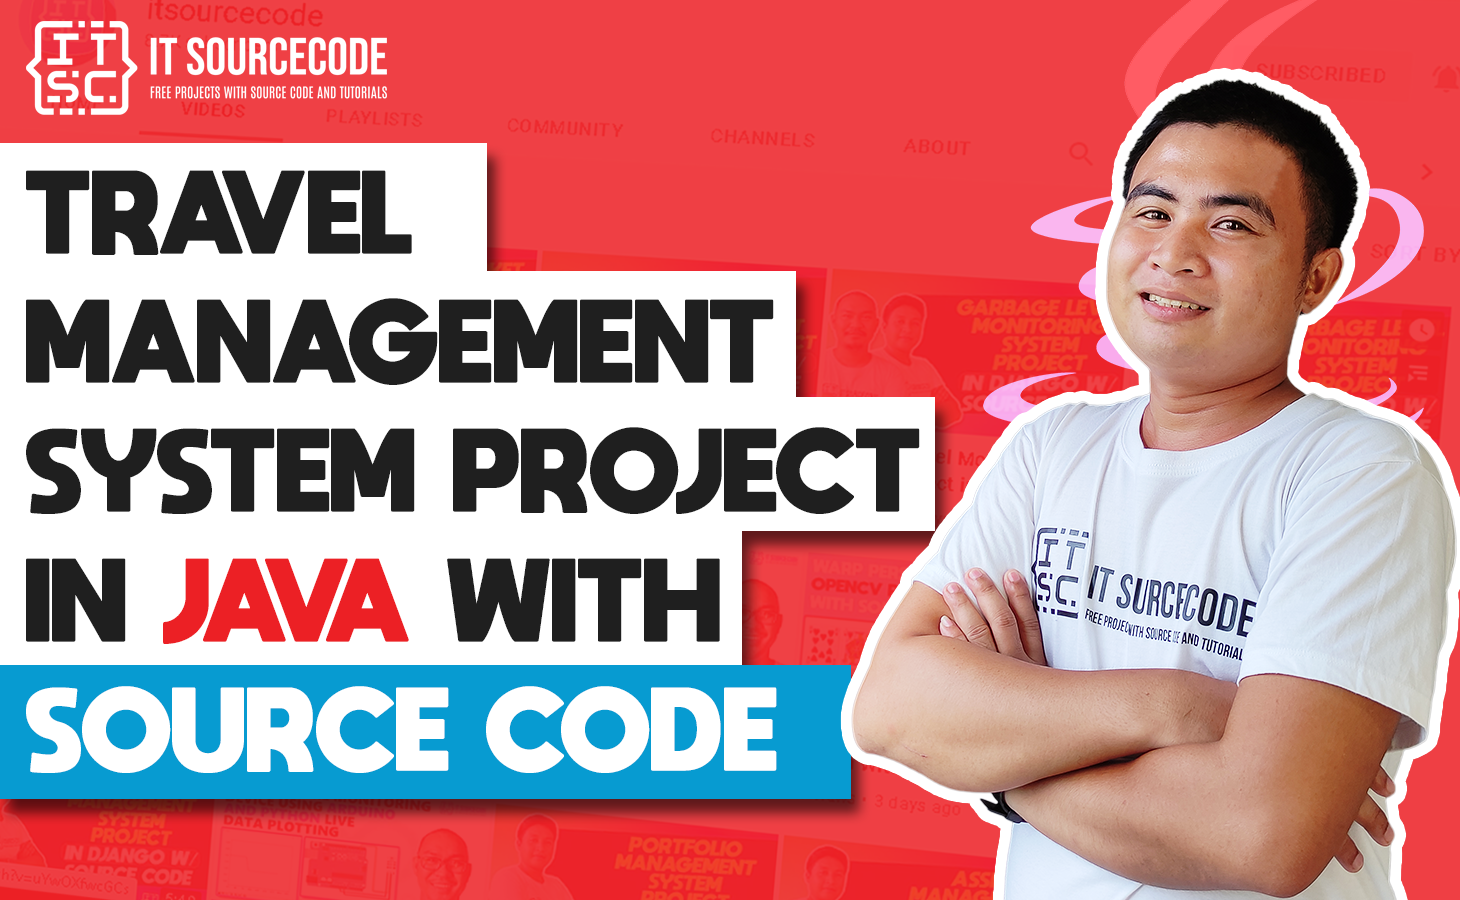 Travel Management System Project In Java With Source Code